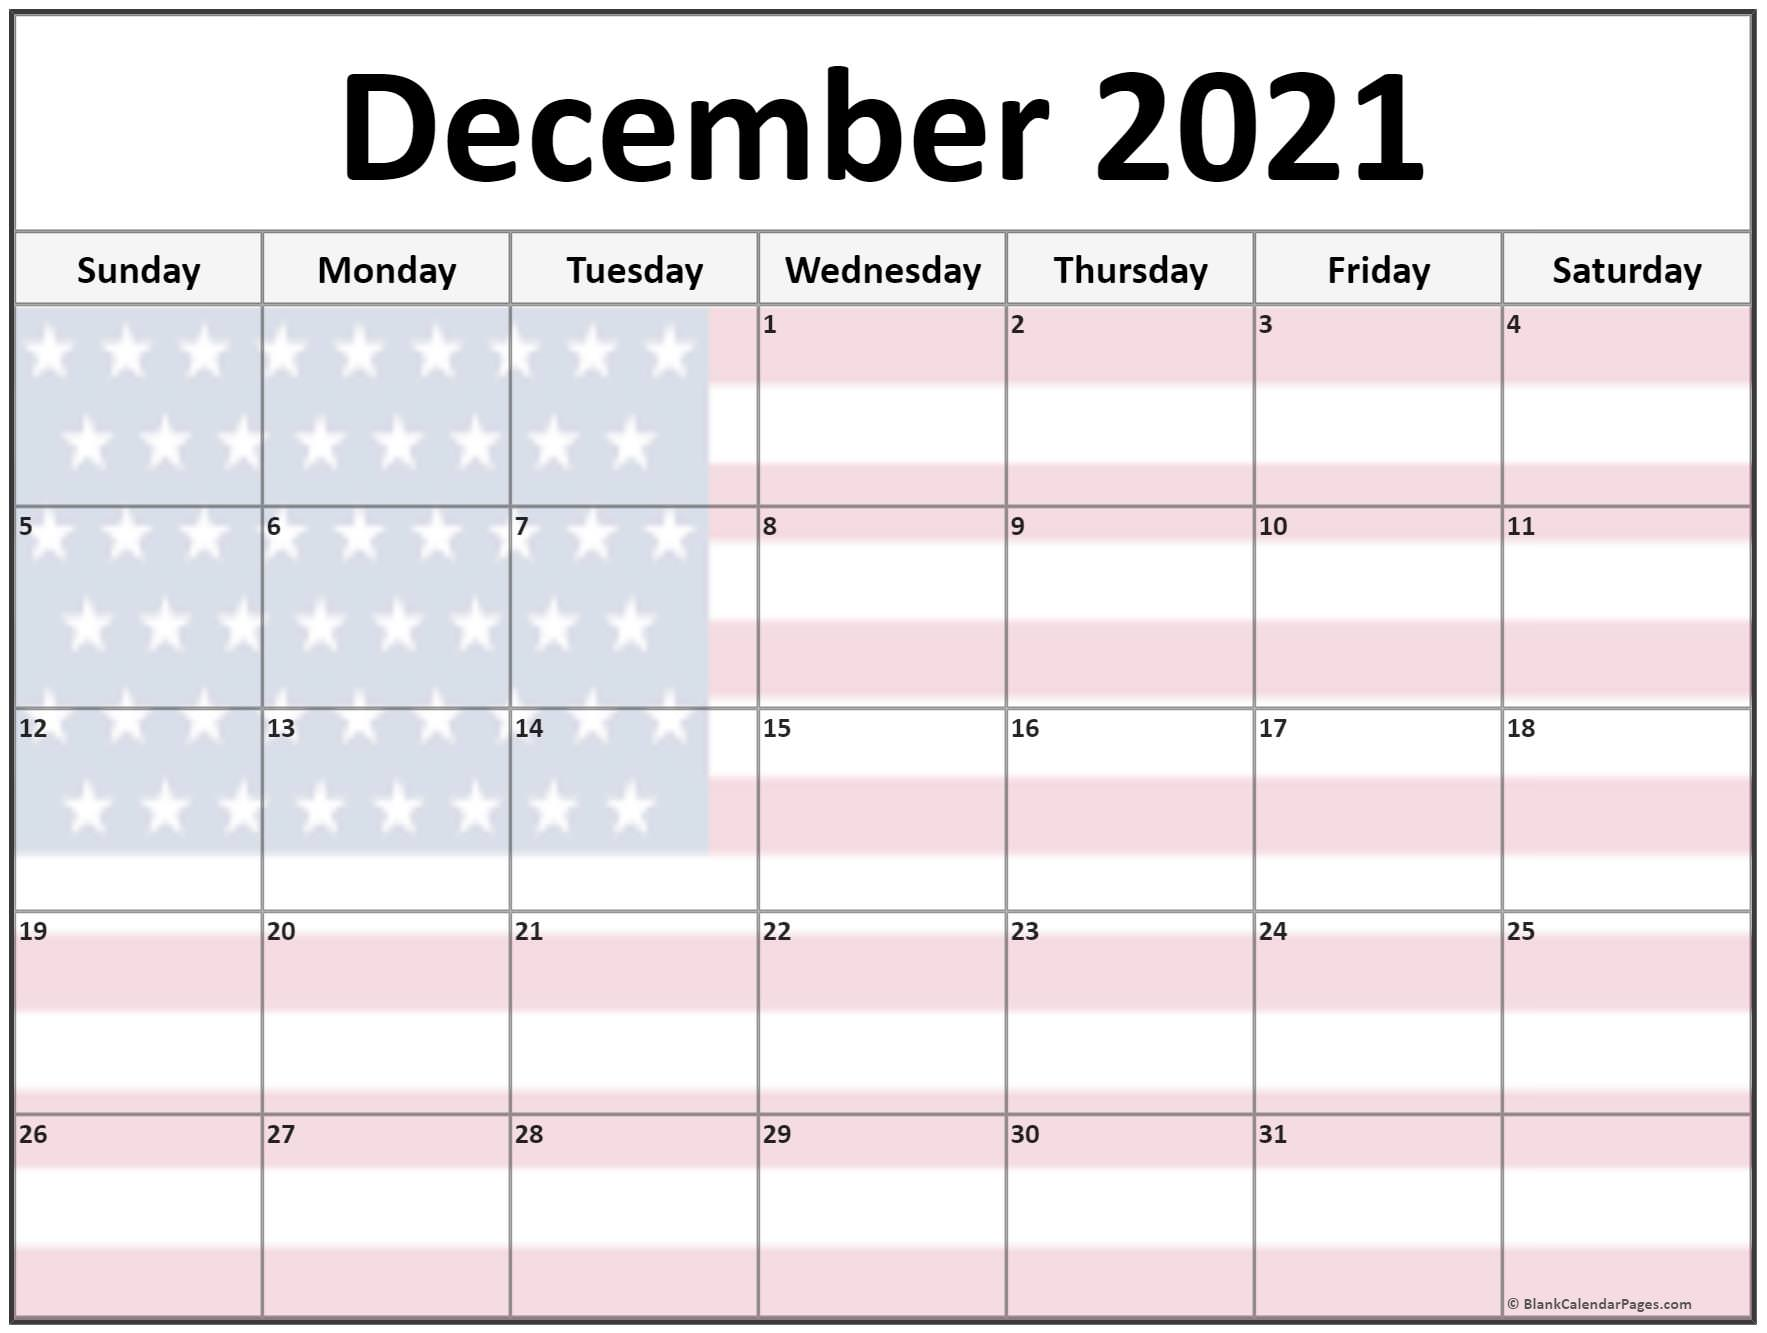 December 2021 USA flag monthly calendar